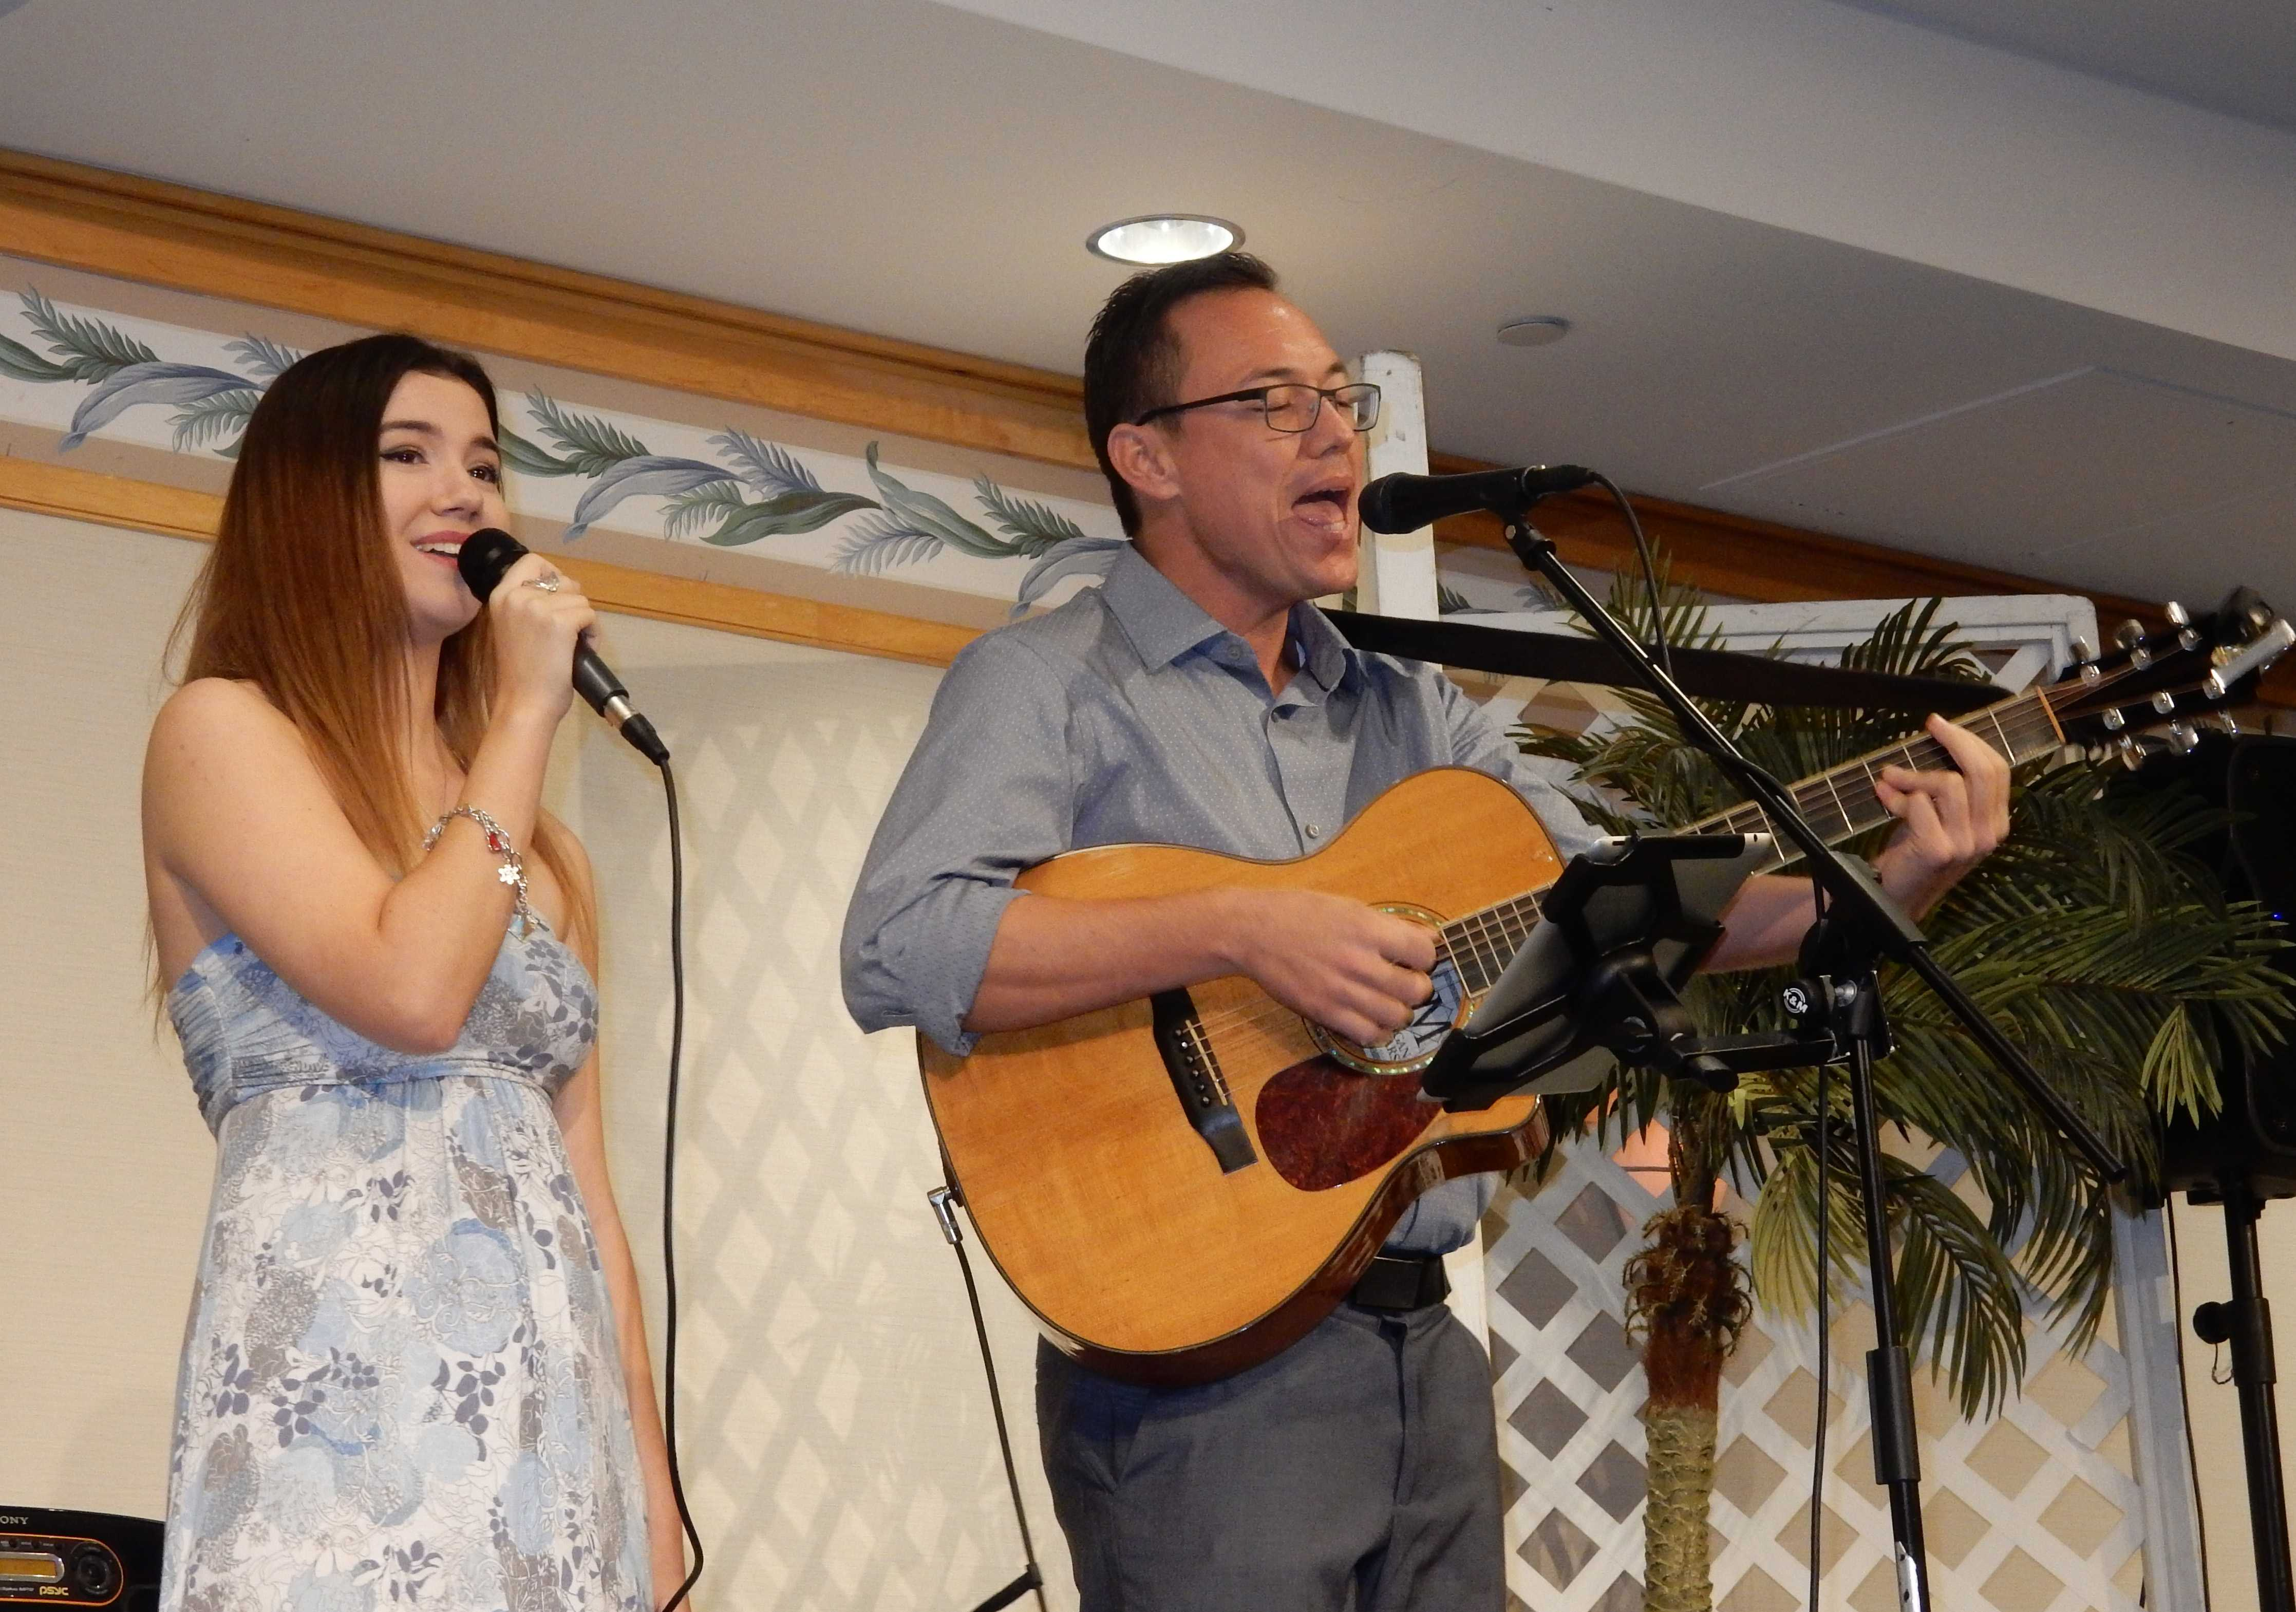 Senior Maya Waldrep performs with her father at the annual Senior Class Ohana Luncheon which celebrates parents and families who have supported students through the years. The occasion marks a last formal gathering of families and friends and classmates before graduation in May.  Photo courtesy of Janelle Medrano